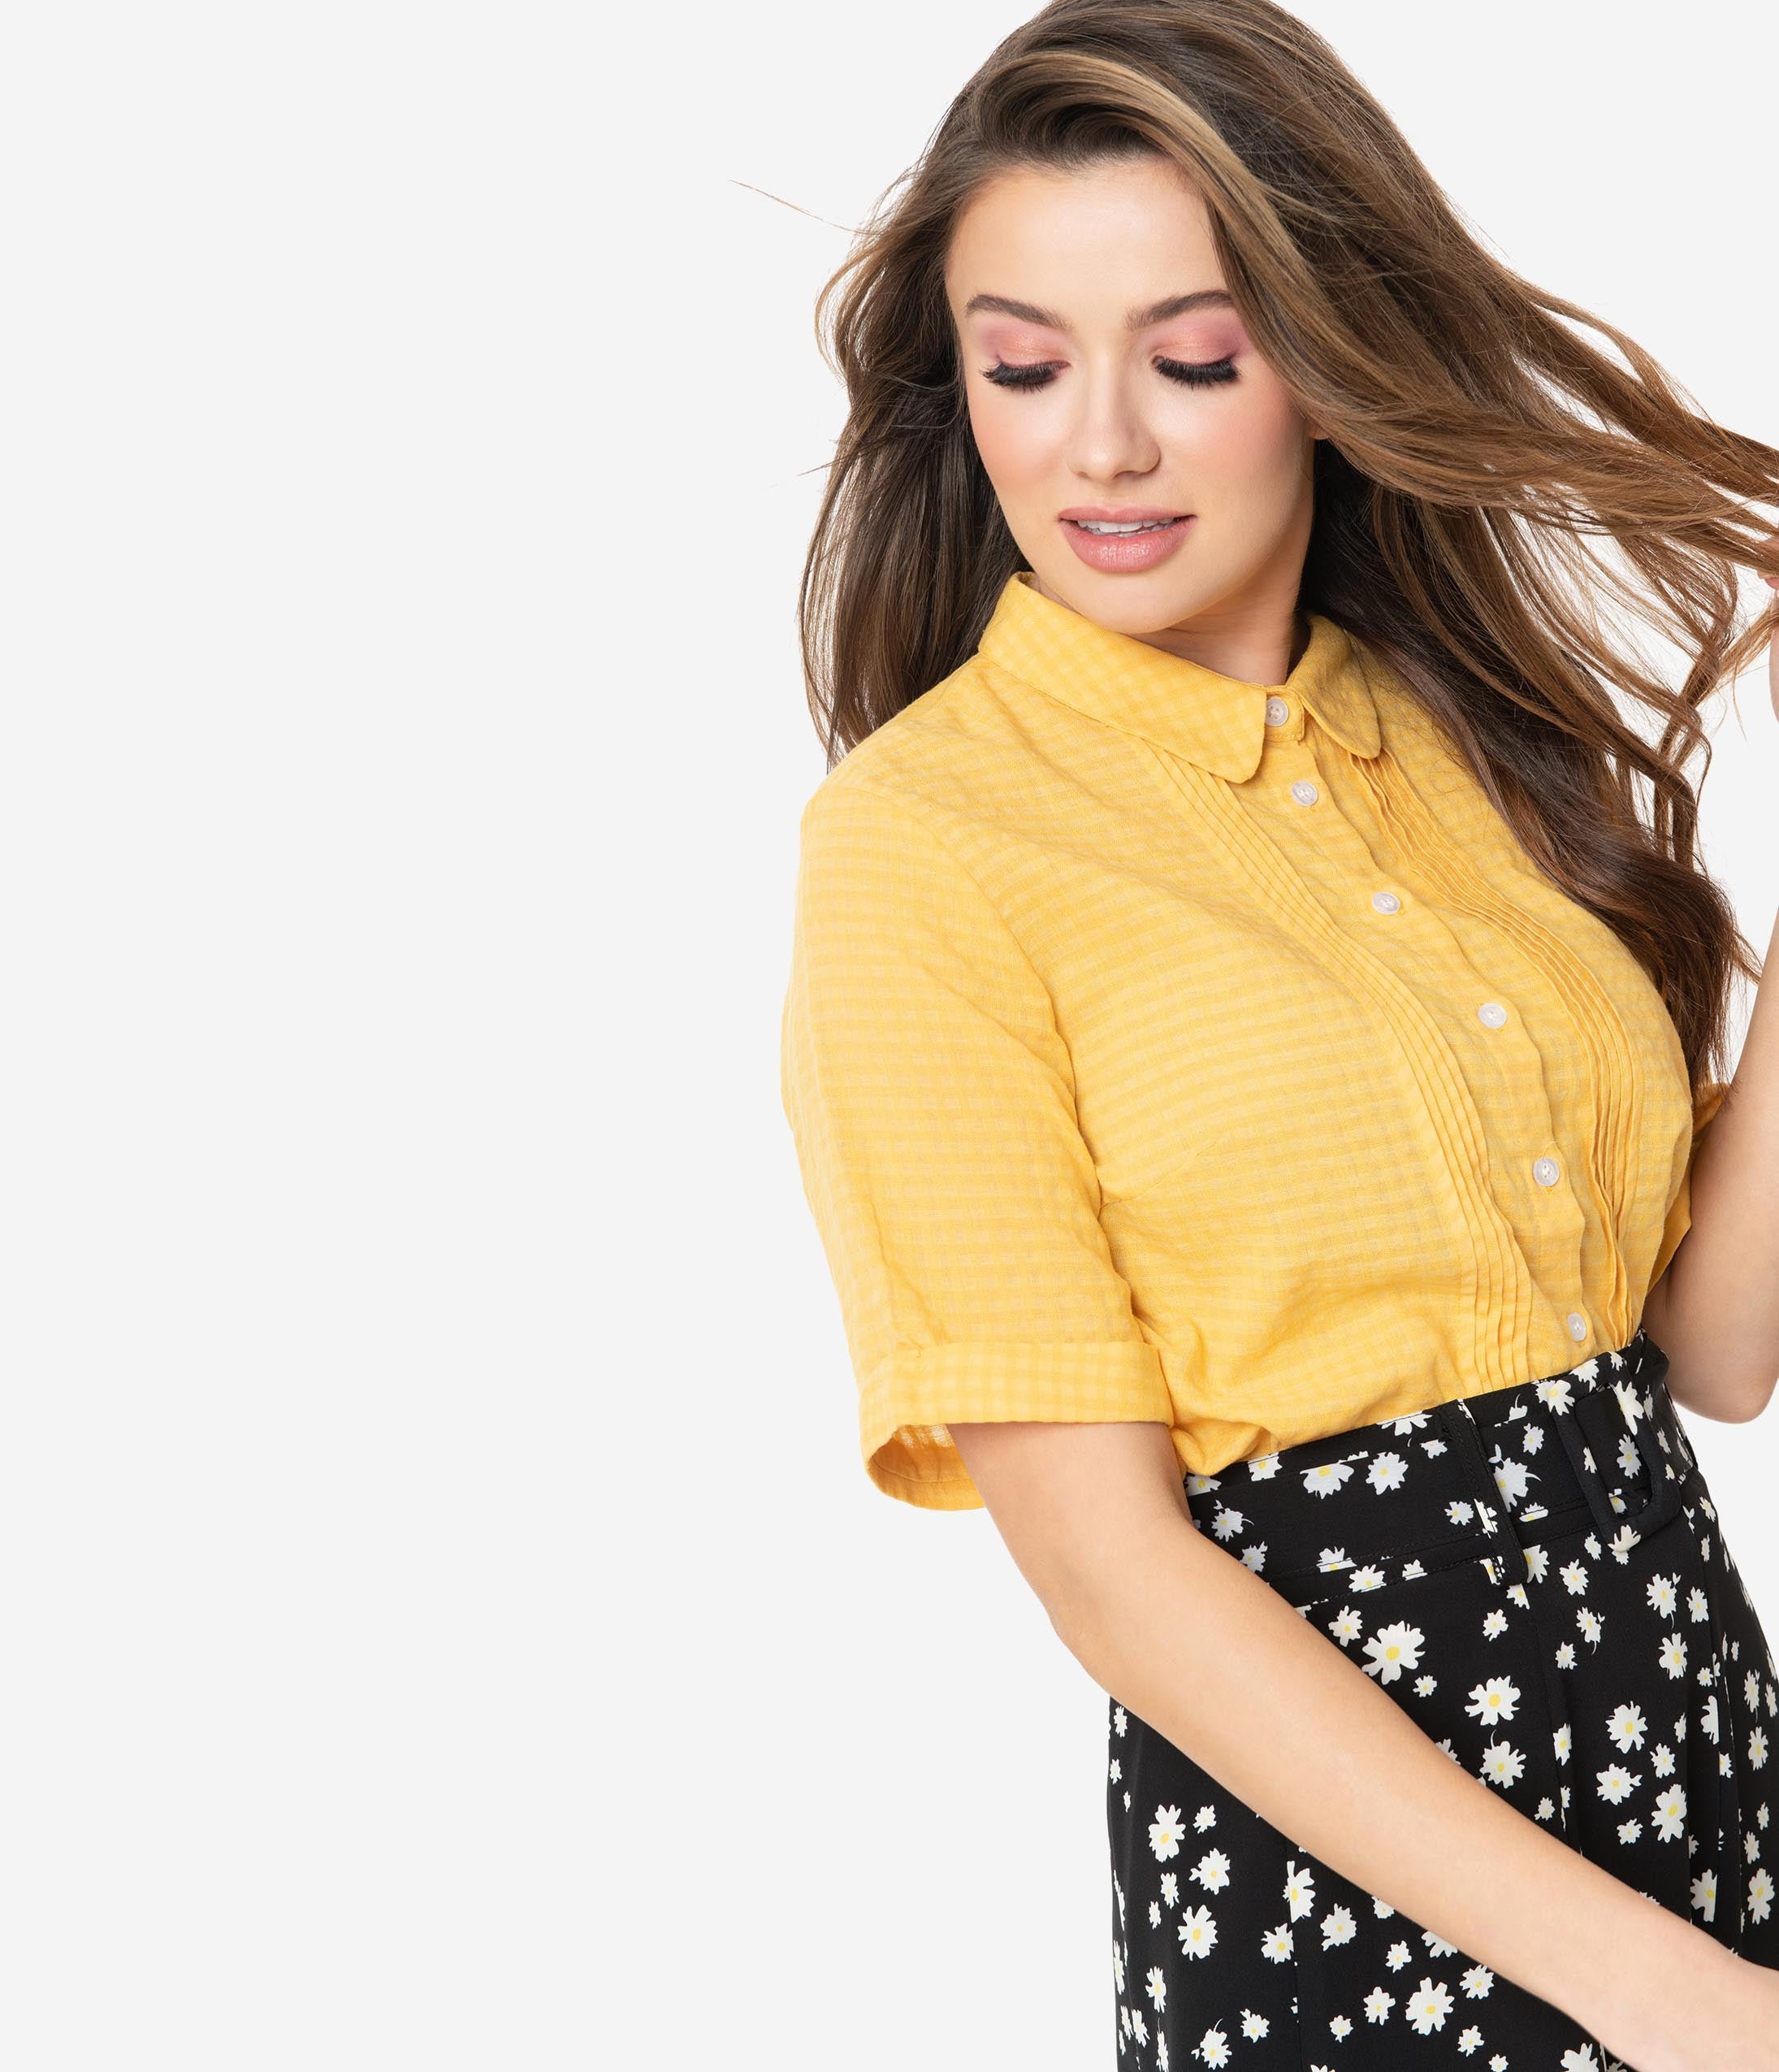 Vintage Tops & Retro Shirts, Halter Tops, Blouses Retro Style Mustard Yellow Gingham Button Up Blouse $46.00 AT vintagedancer.com